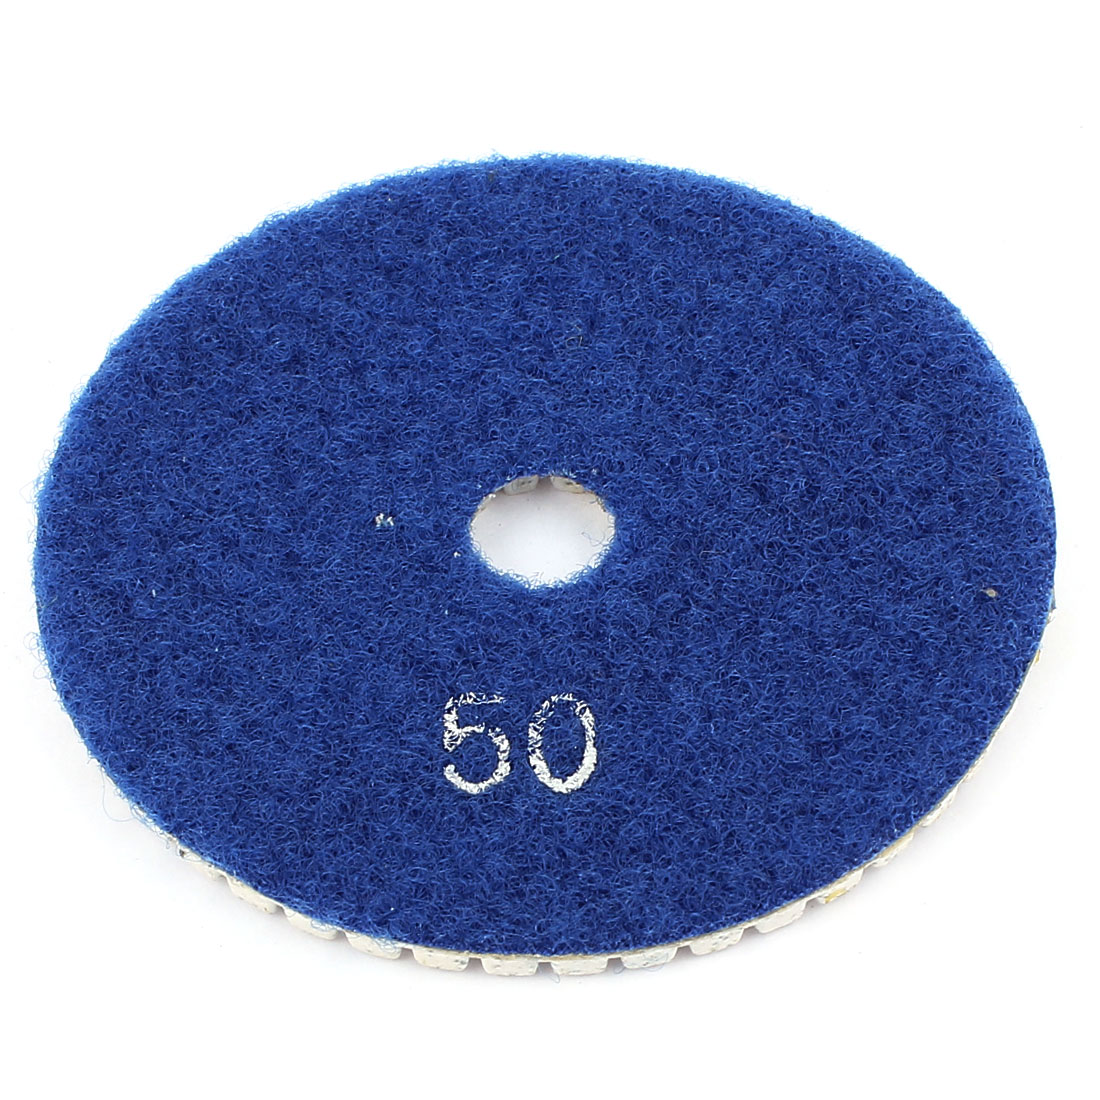 Marble Tile Stone Wet Grinder Diamond Polishing Pad 50 Grit 4 inch